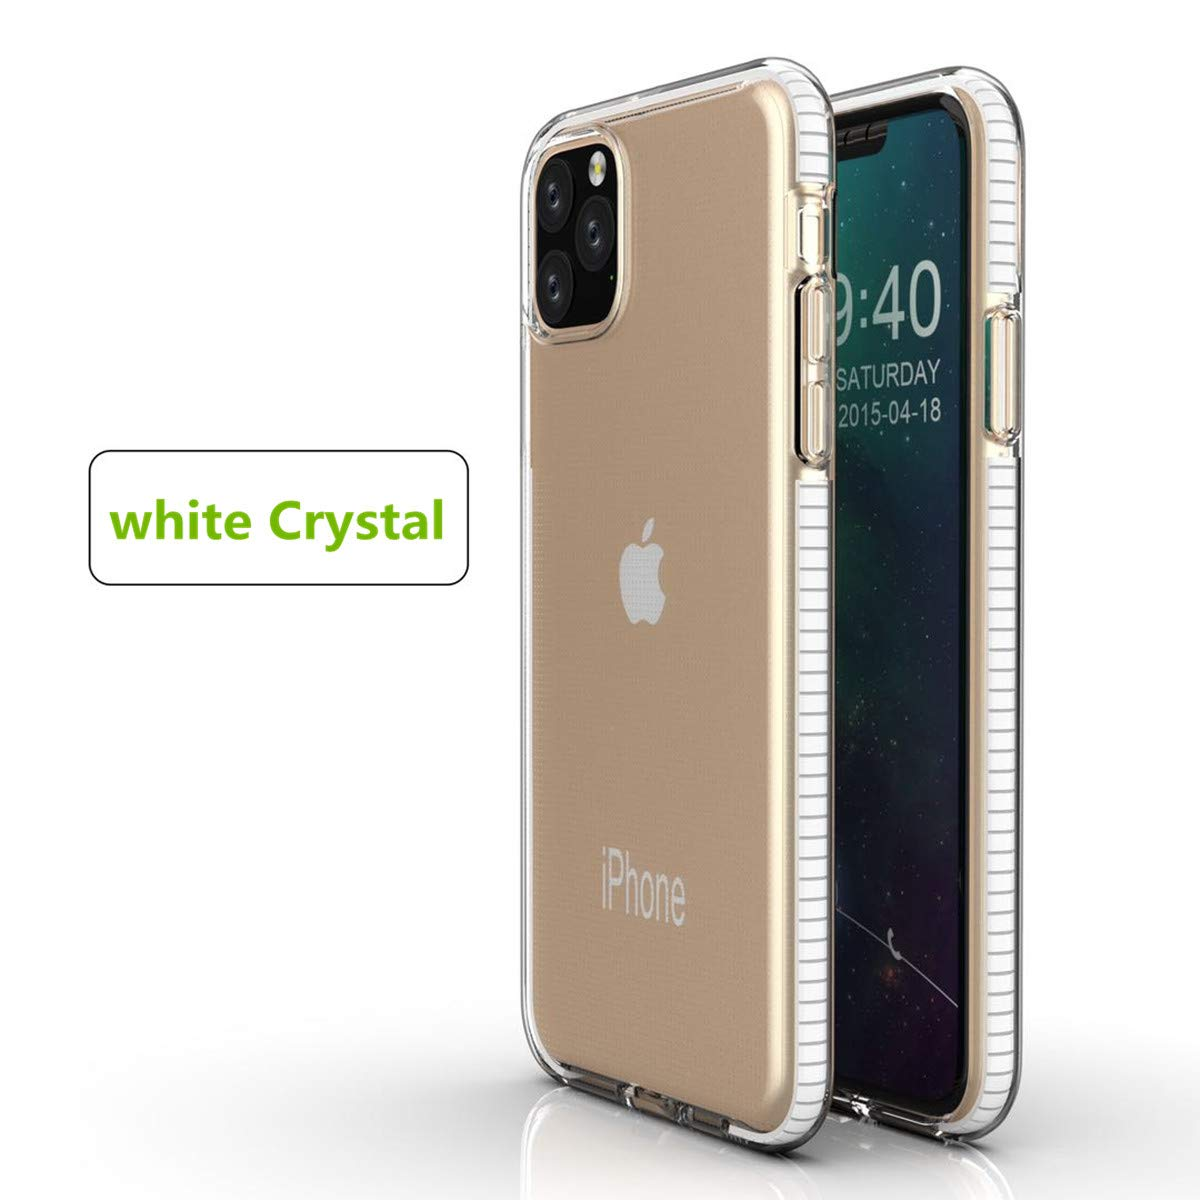 LucaSng Compatible with iPhone 11 Pro Max Case, Clear iPhone 11 Cases Cover for iPhone 11 Pro Max 6.5 Inch Crystal Clear Case Shockproof Protection Soft Scratch-Resistant TPU Cover (White)